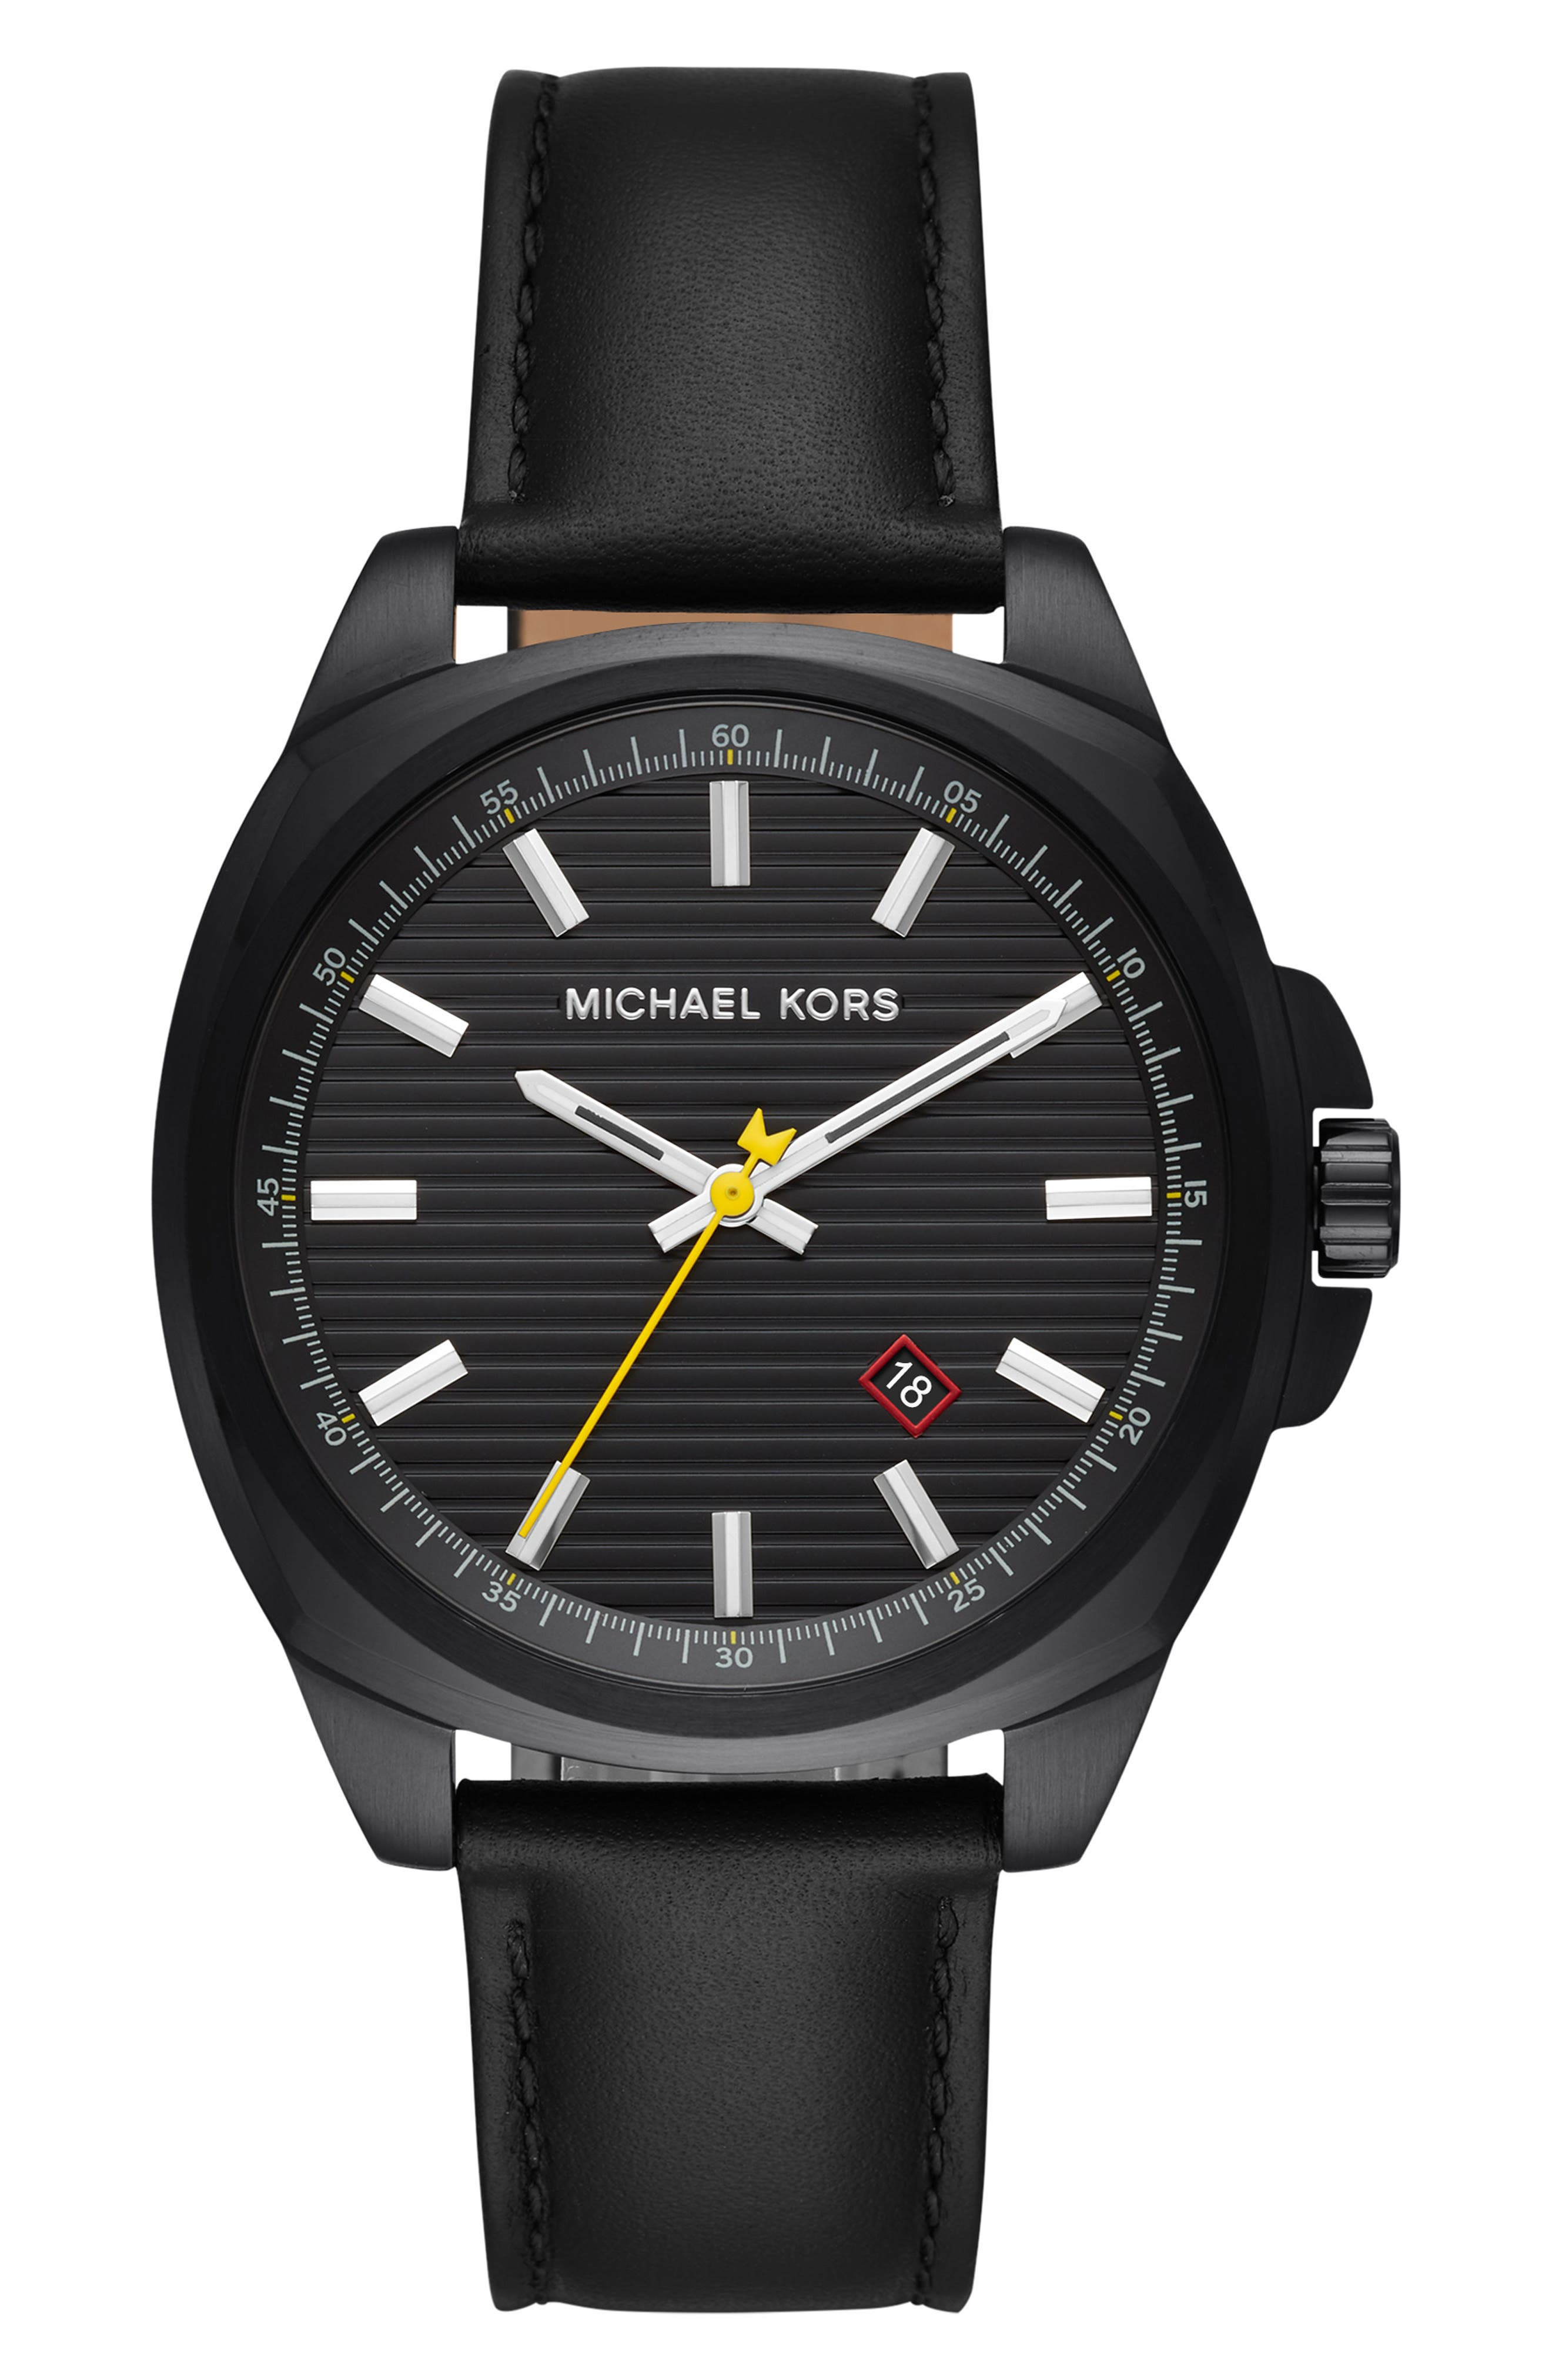 MICHAEL KORS Bryson Leather Strap Watch, 42mm, Main, color, 001